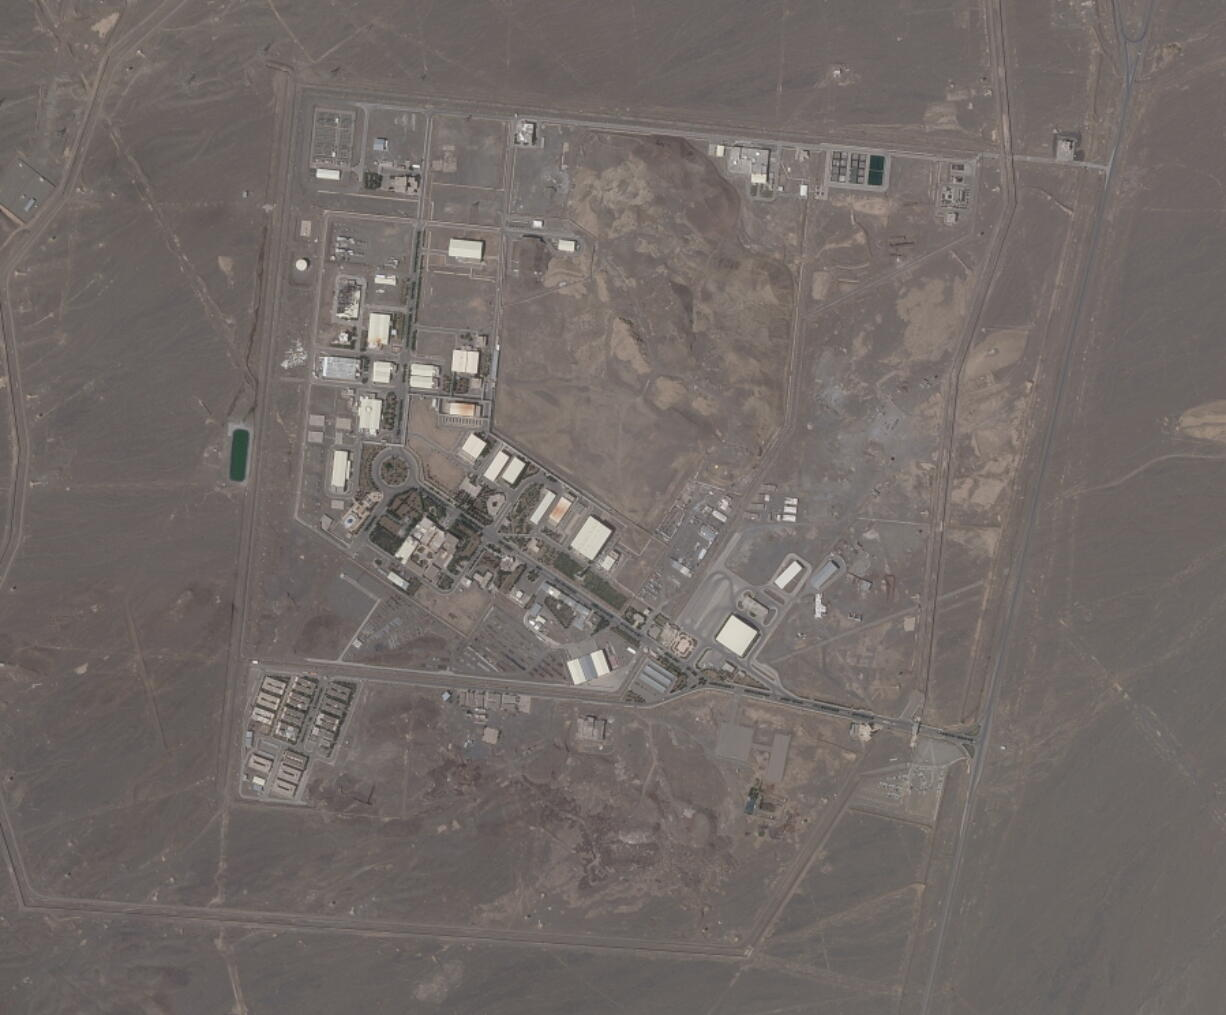 This satellite photo provided from Planet Labs Inc. shows Iran's Natanz nuclear facility on Wednesday, April 14, 2021. Iran began enriching uranium Friday, April 16, 2021, to its highest level ever at Natanz, edging closer to weapons-grade levels to pressure talks in Vienna aimed at restoring its nuclear deal with world powers after an attack on the site.